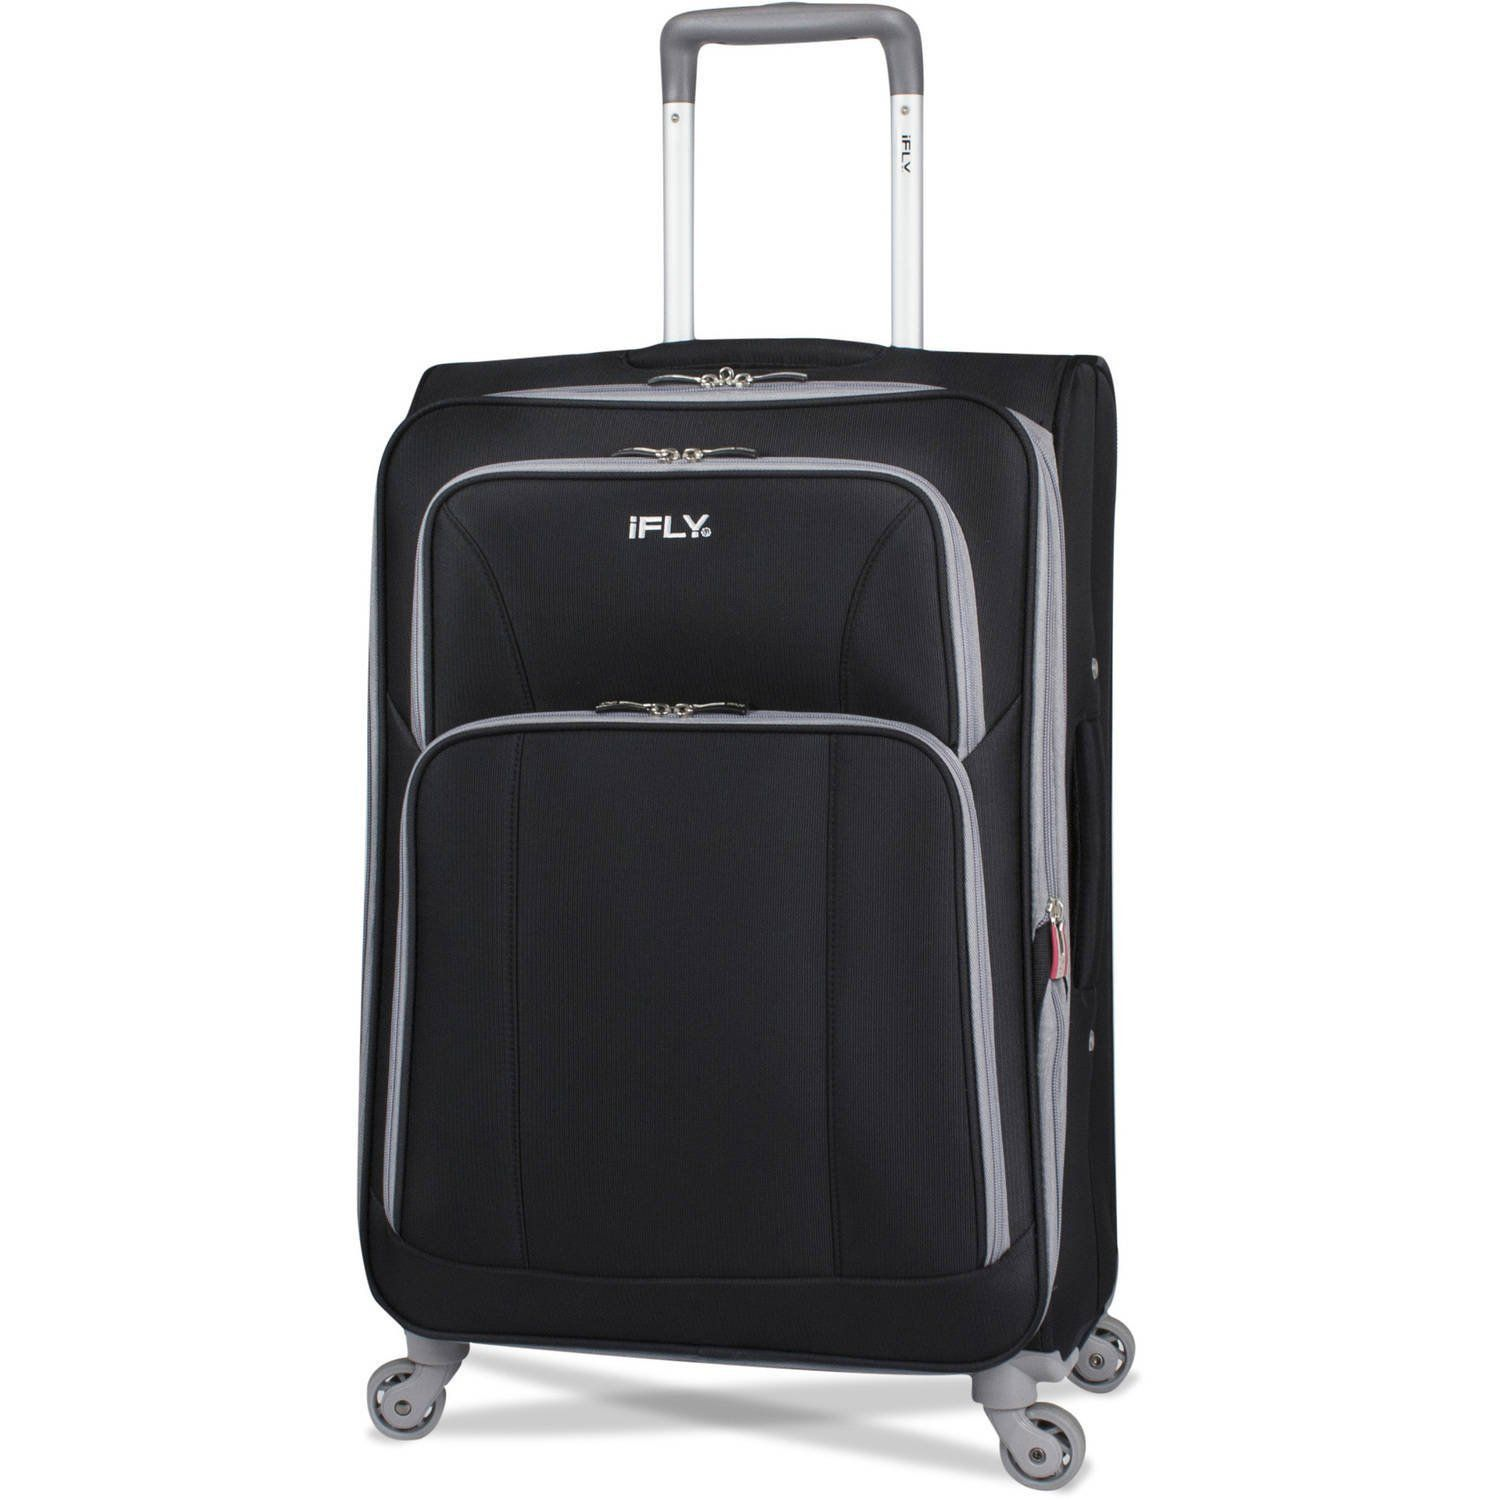 4dba94f2a The 3 Best iFLY Luggage Items of 2019